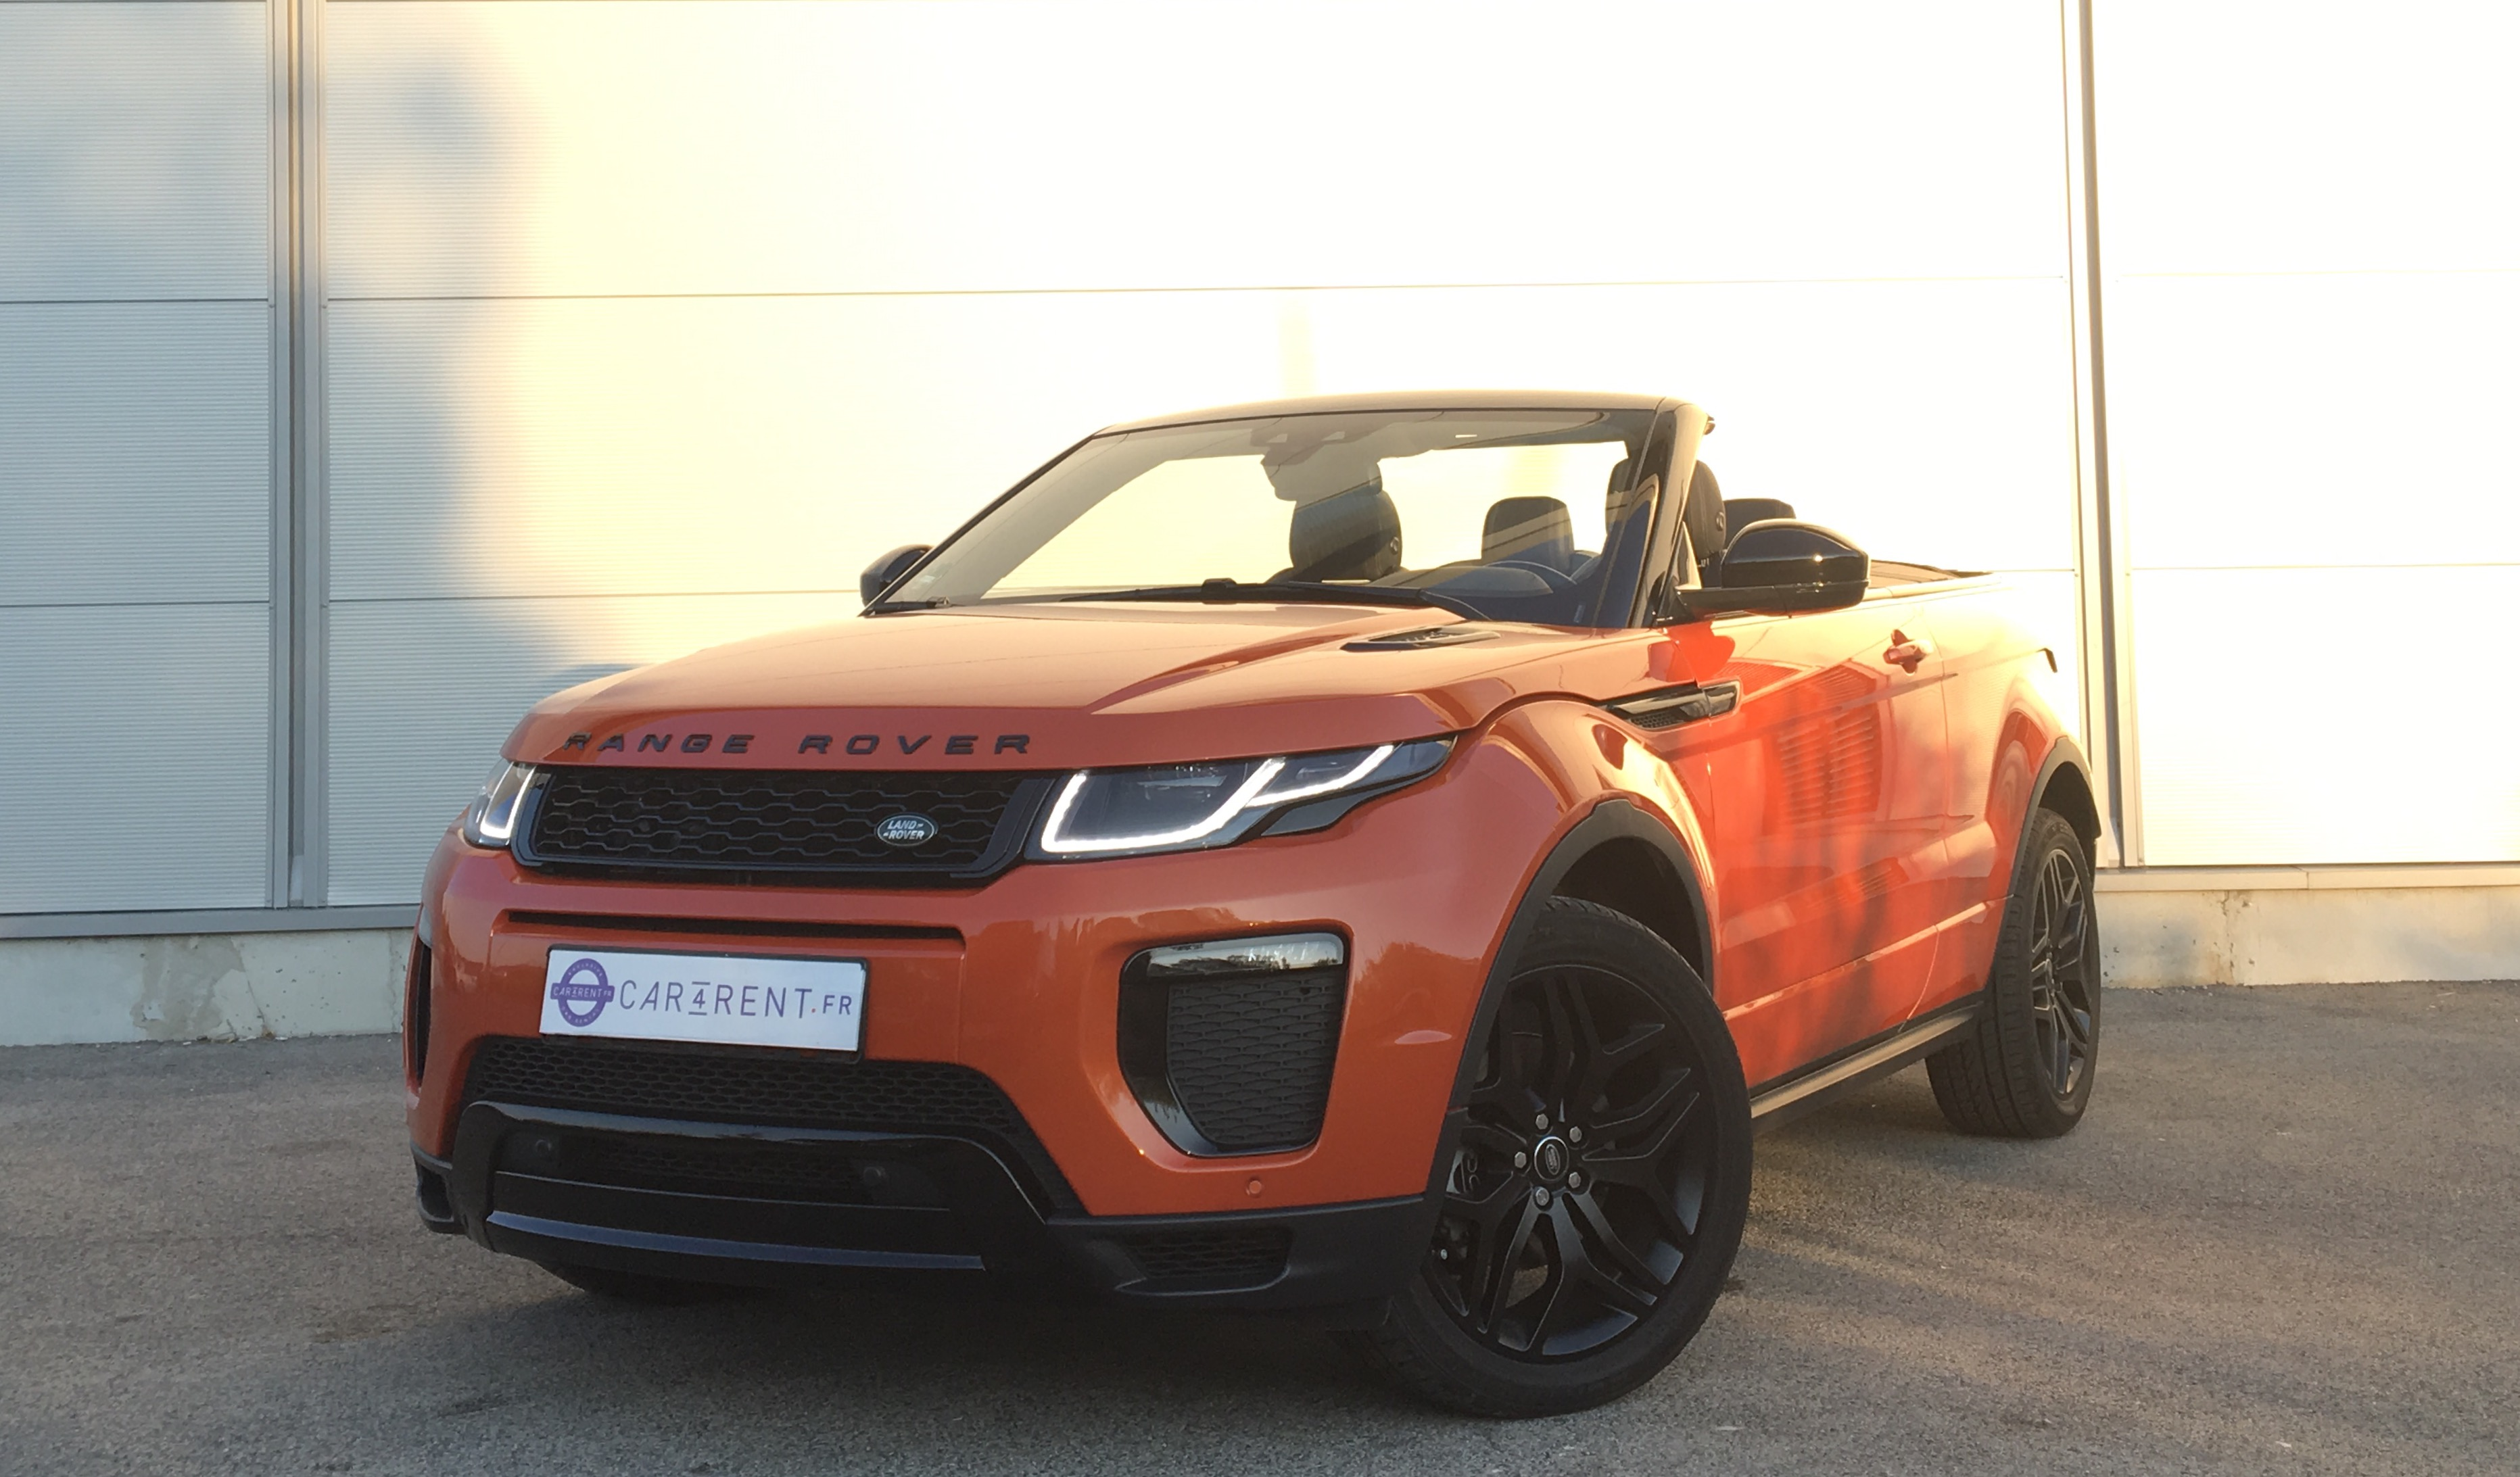 land rover evoque d180 hse dynamic convertible car4rent. Black Bedroom Furniture Sets. Home Design Ideas